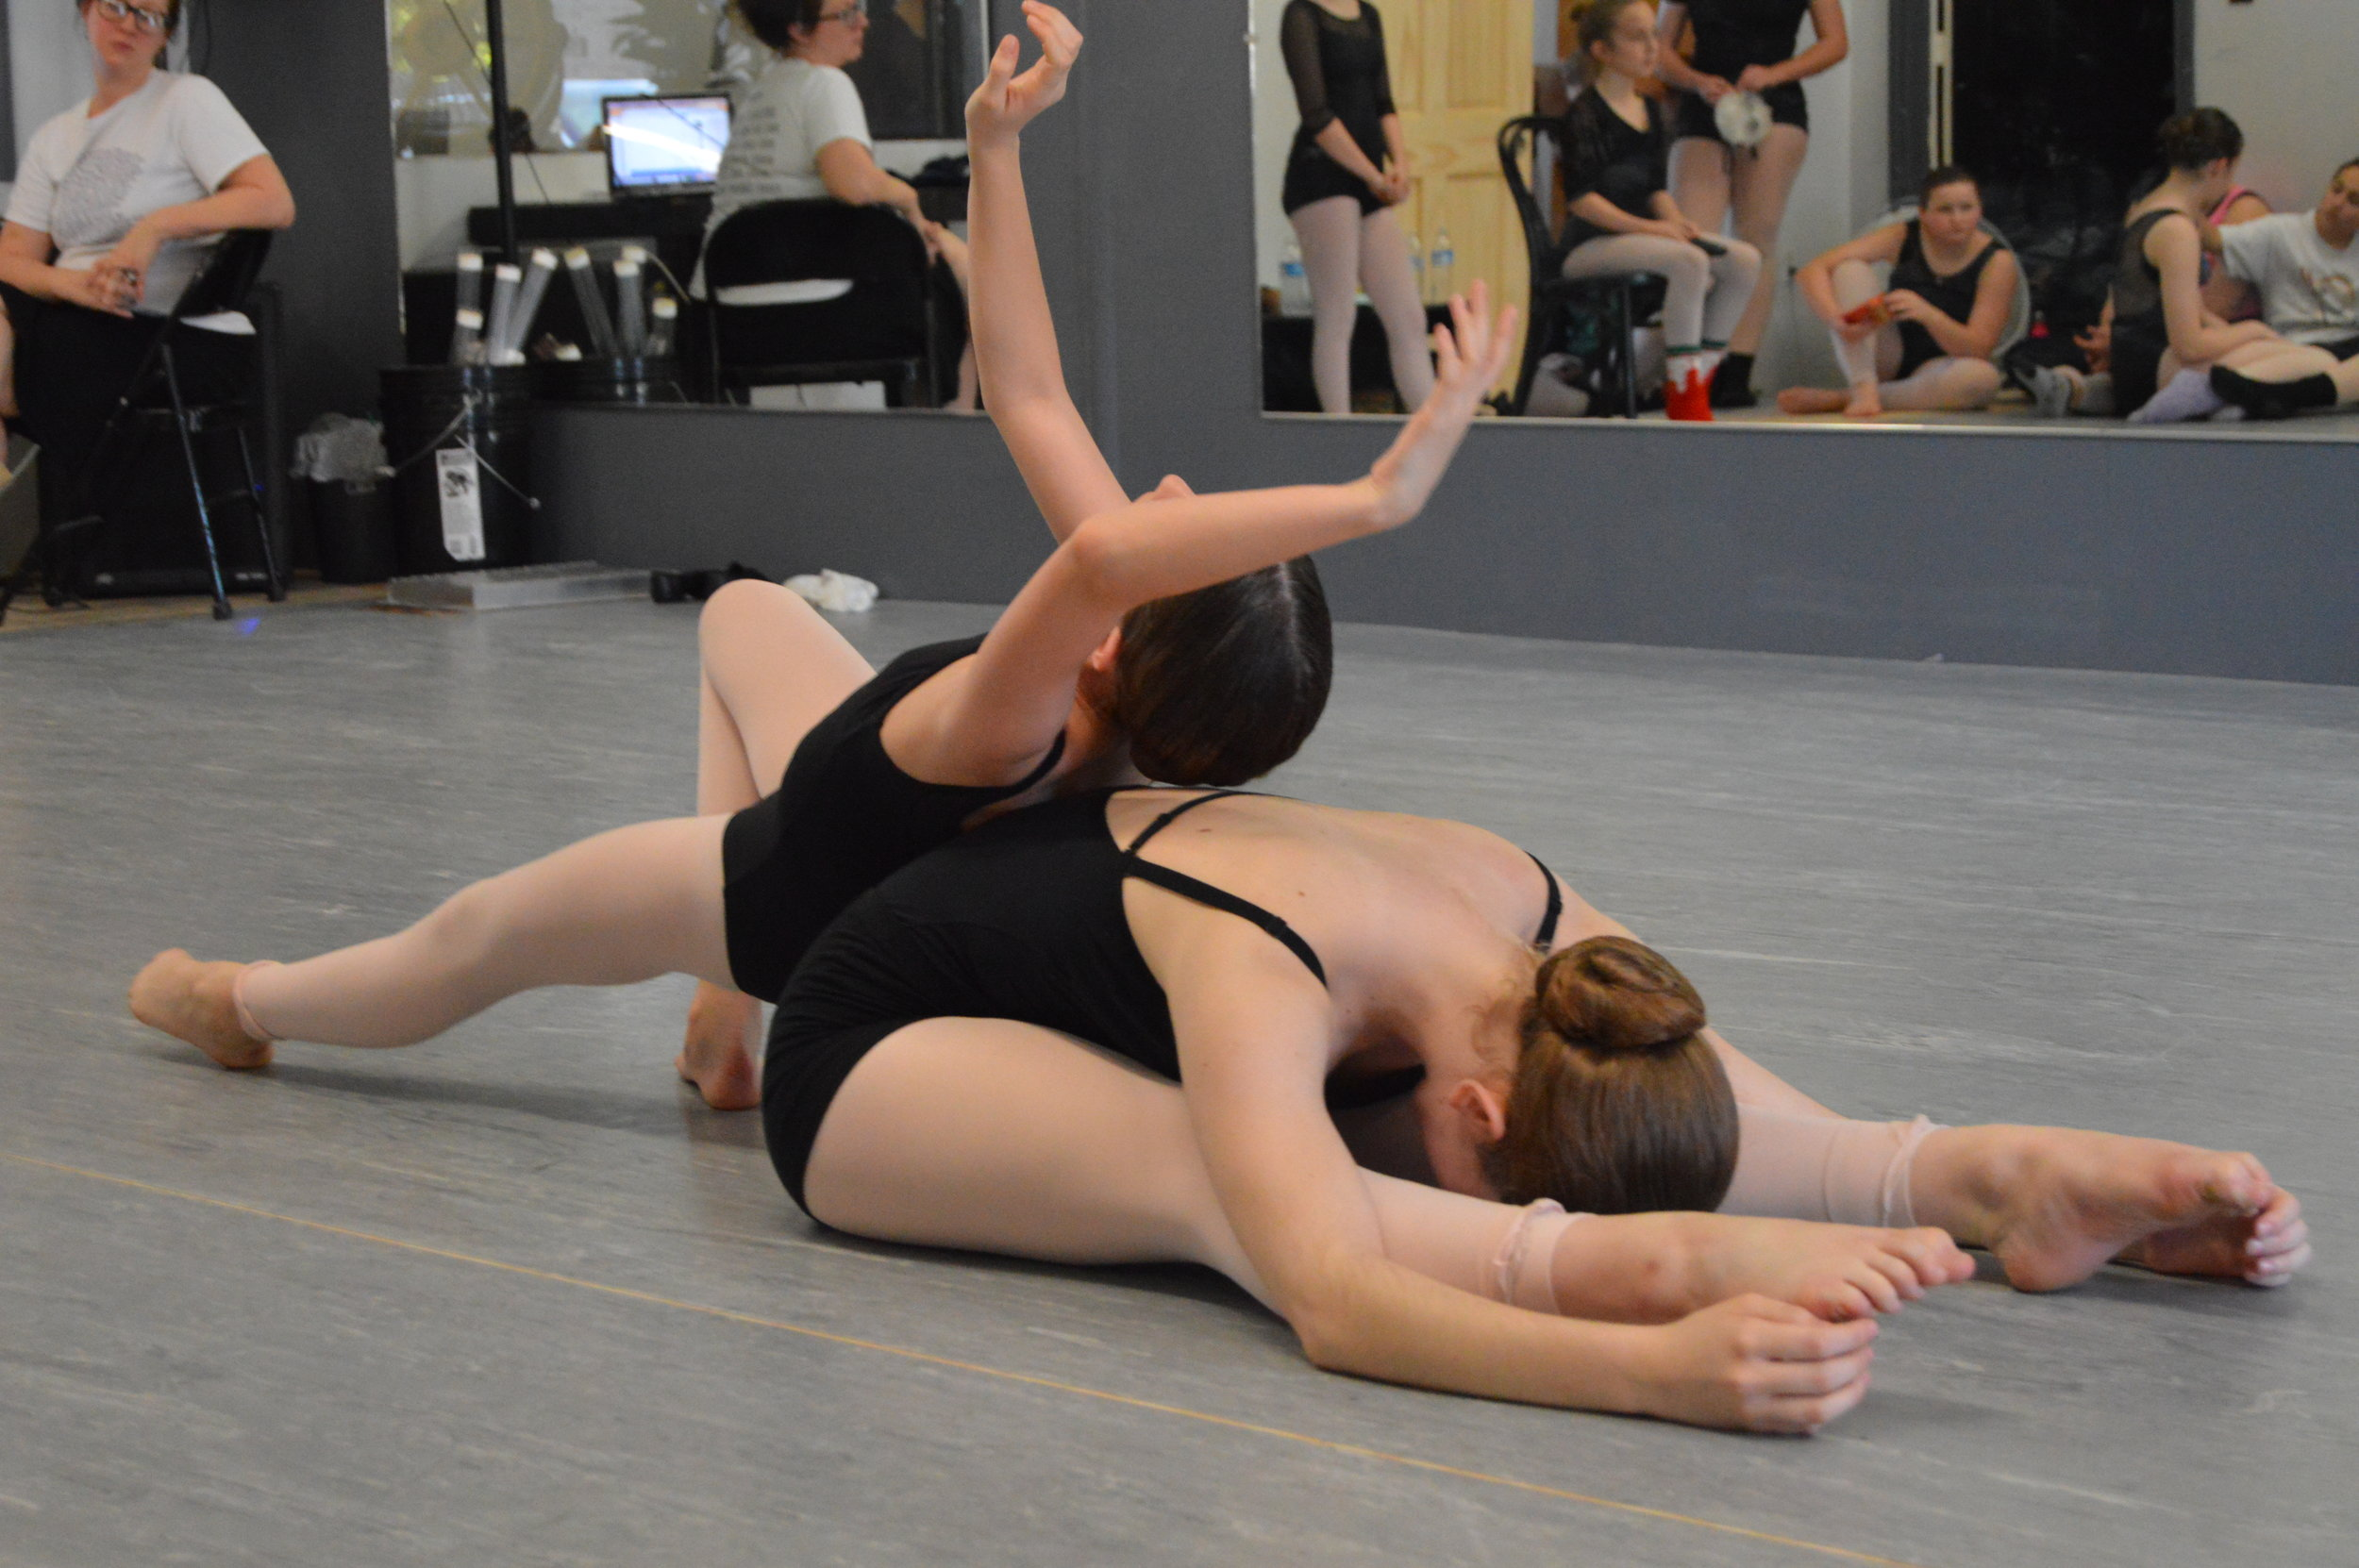 Karaline & Emily, Juxtapose II Dancers, rehearsing 'Stages 1 of 5' in  The Other Side